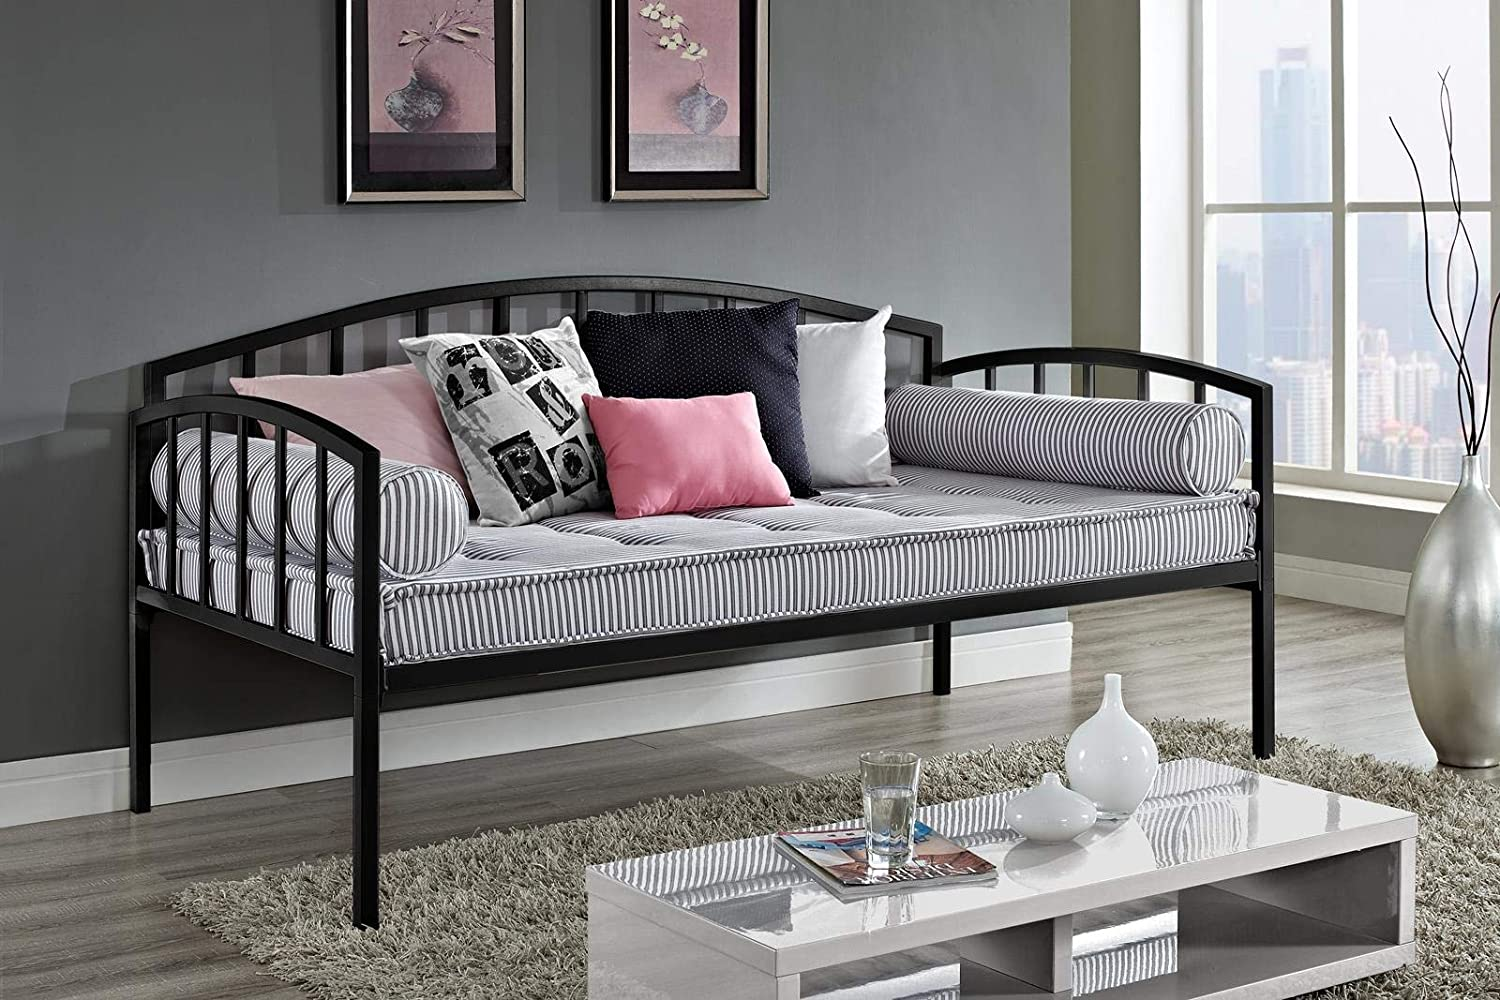 White DHP Ava Metal Daybed Frame with Round Arm Design Fits Twin Size Mattress